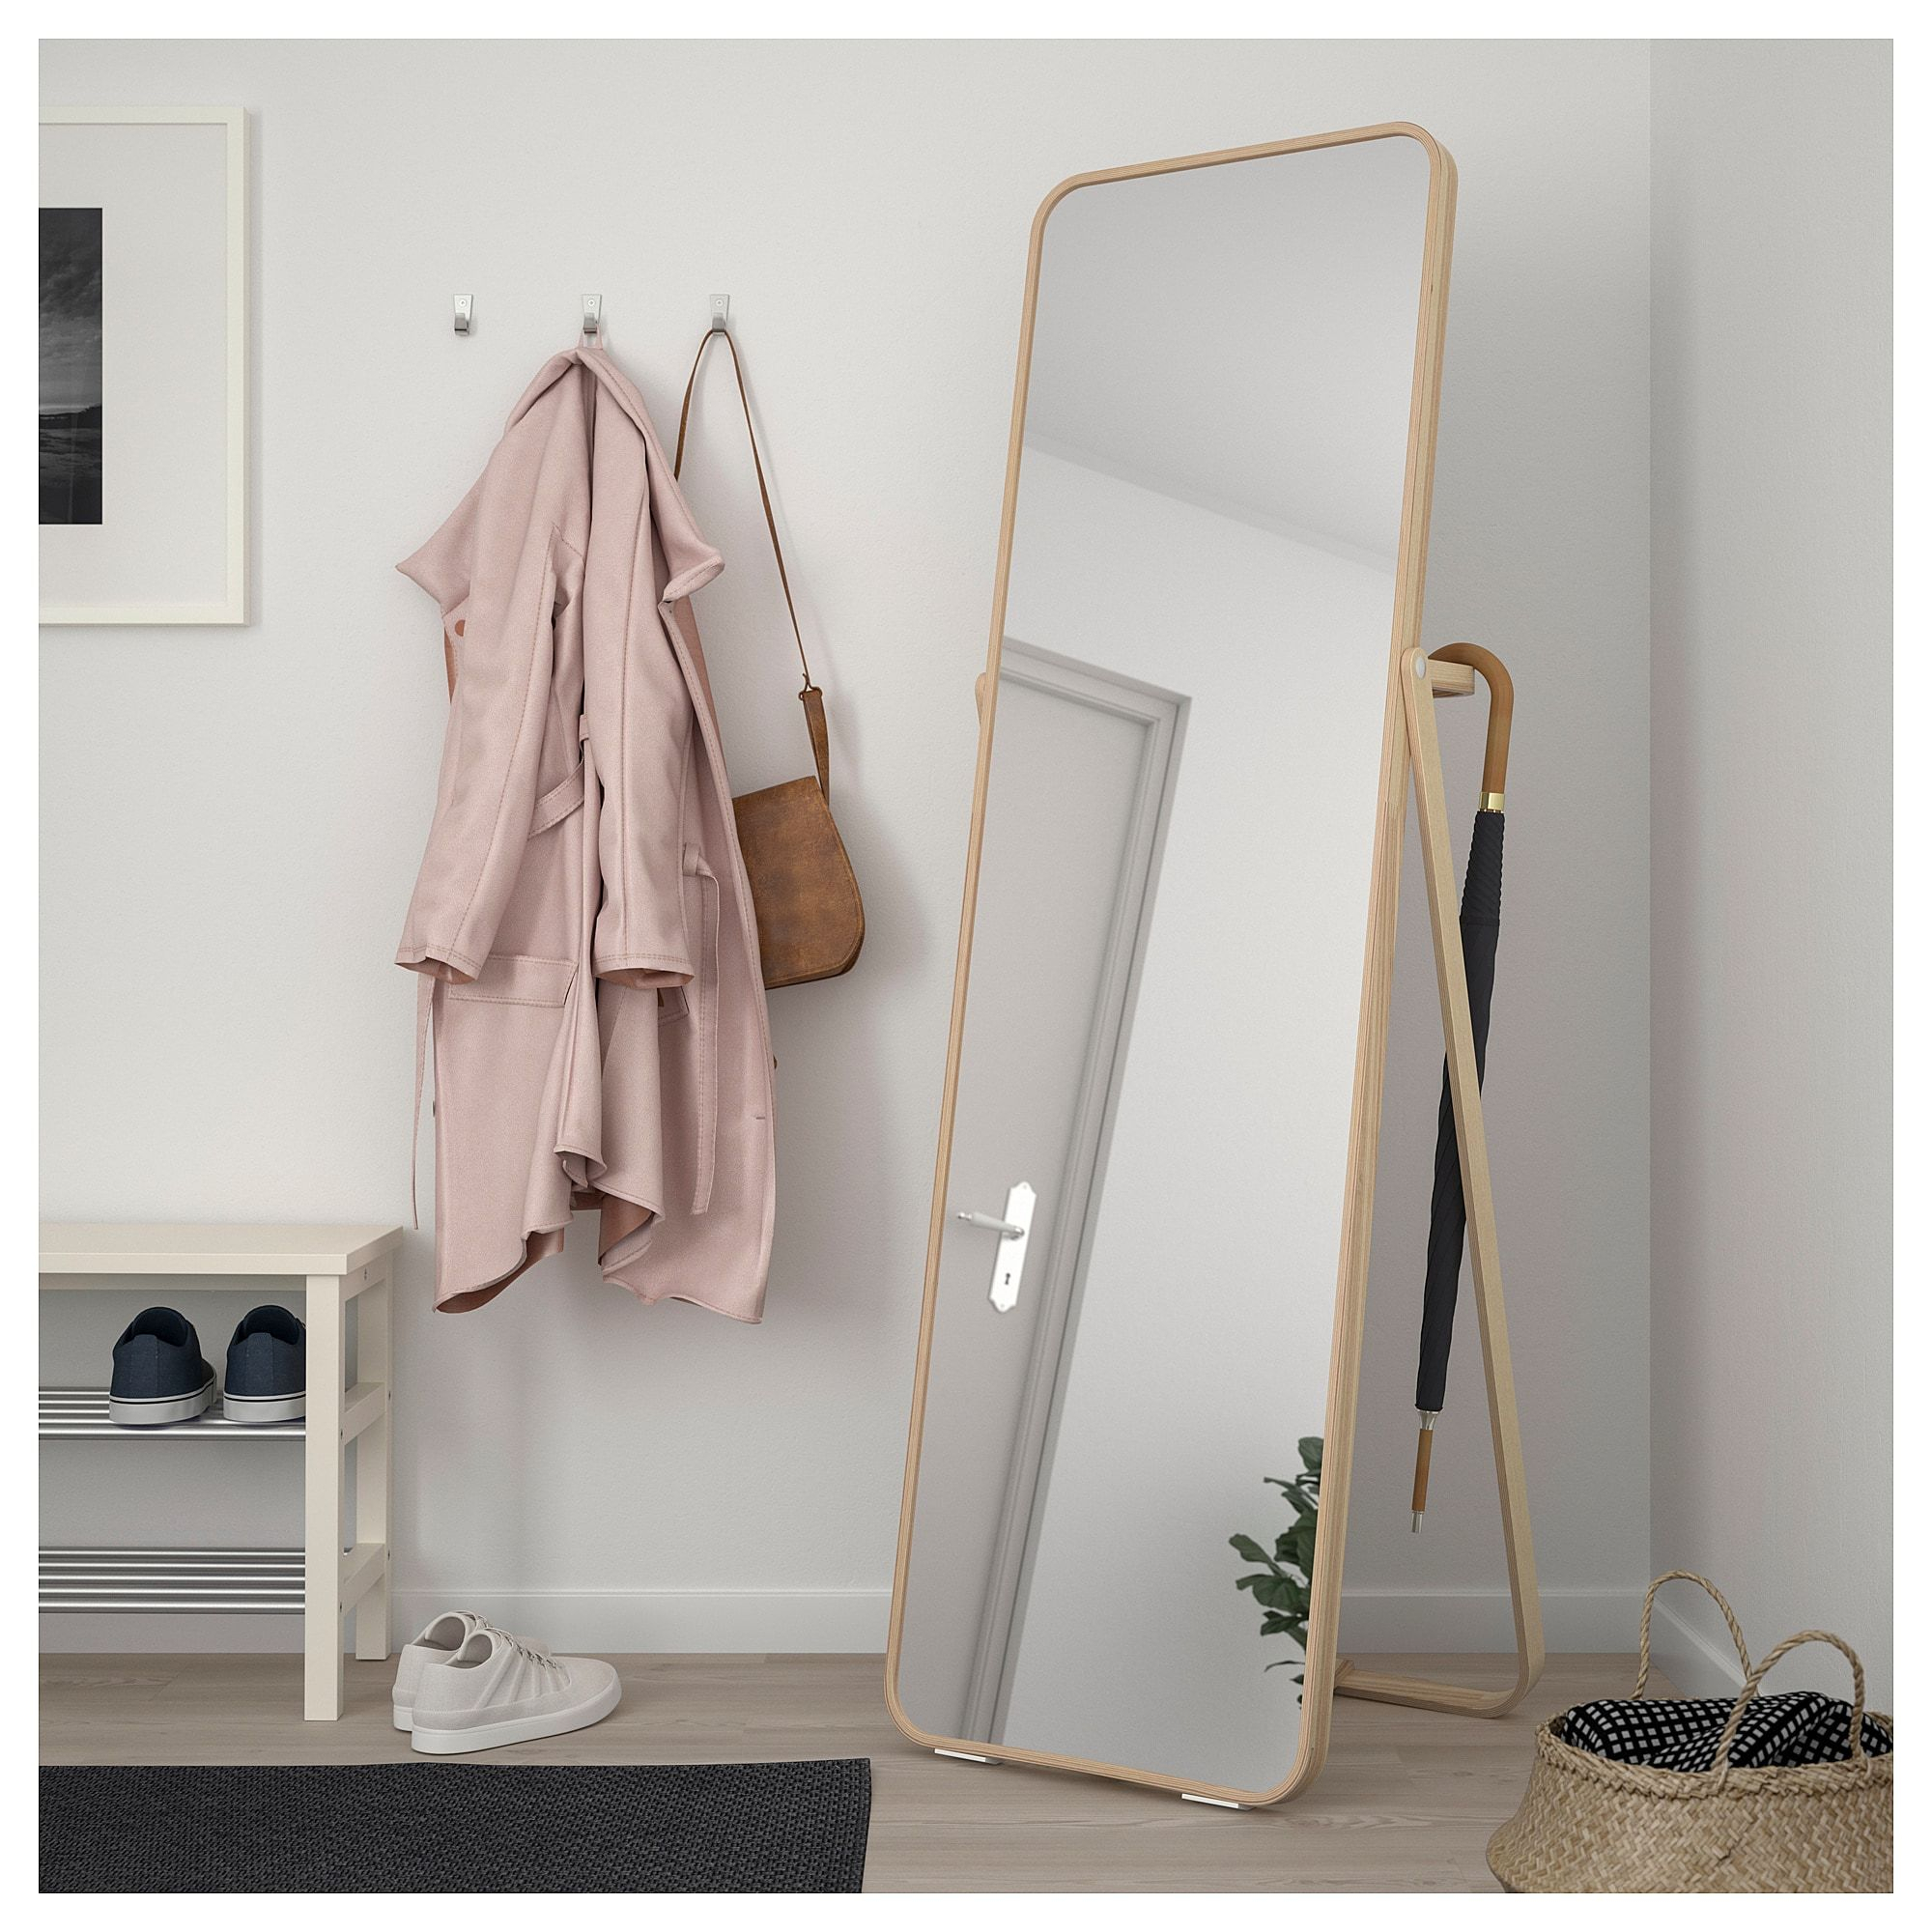 10 Standing Mirrors Under $200 – Cheap Full Length And Floor Inside Northcutt Accent Mirrors (Gallery 30 of 30)